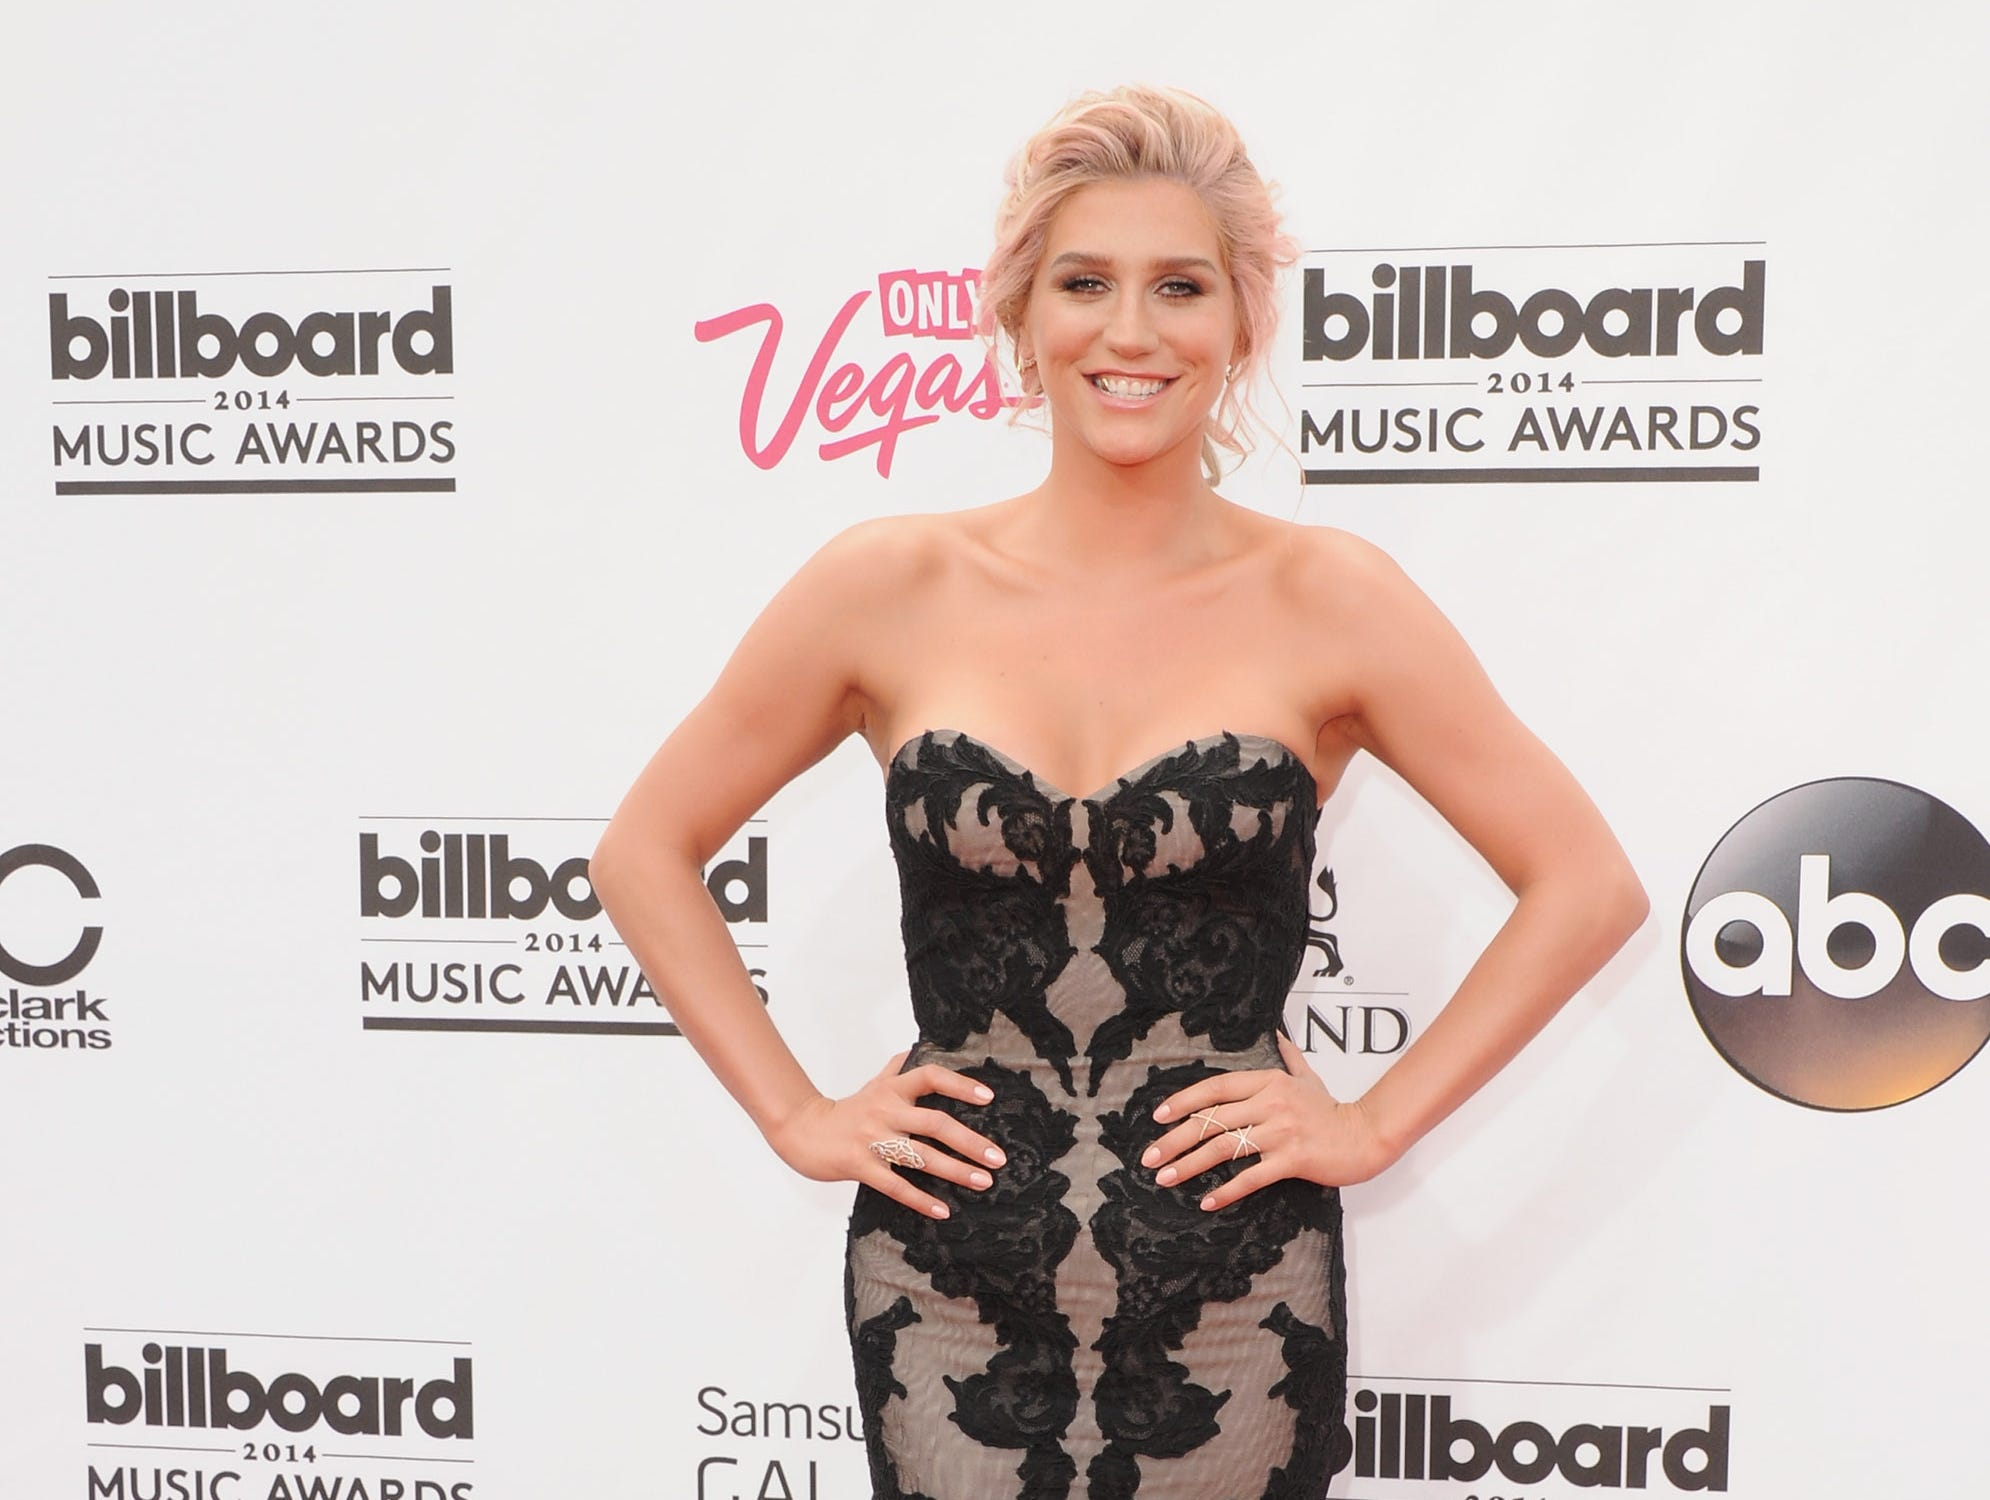 Kesha arrives at the 2014 Billboard Music Awards on May 18, 2014 in Las Vegas, Nevada.